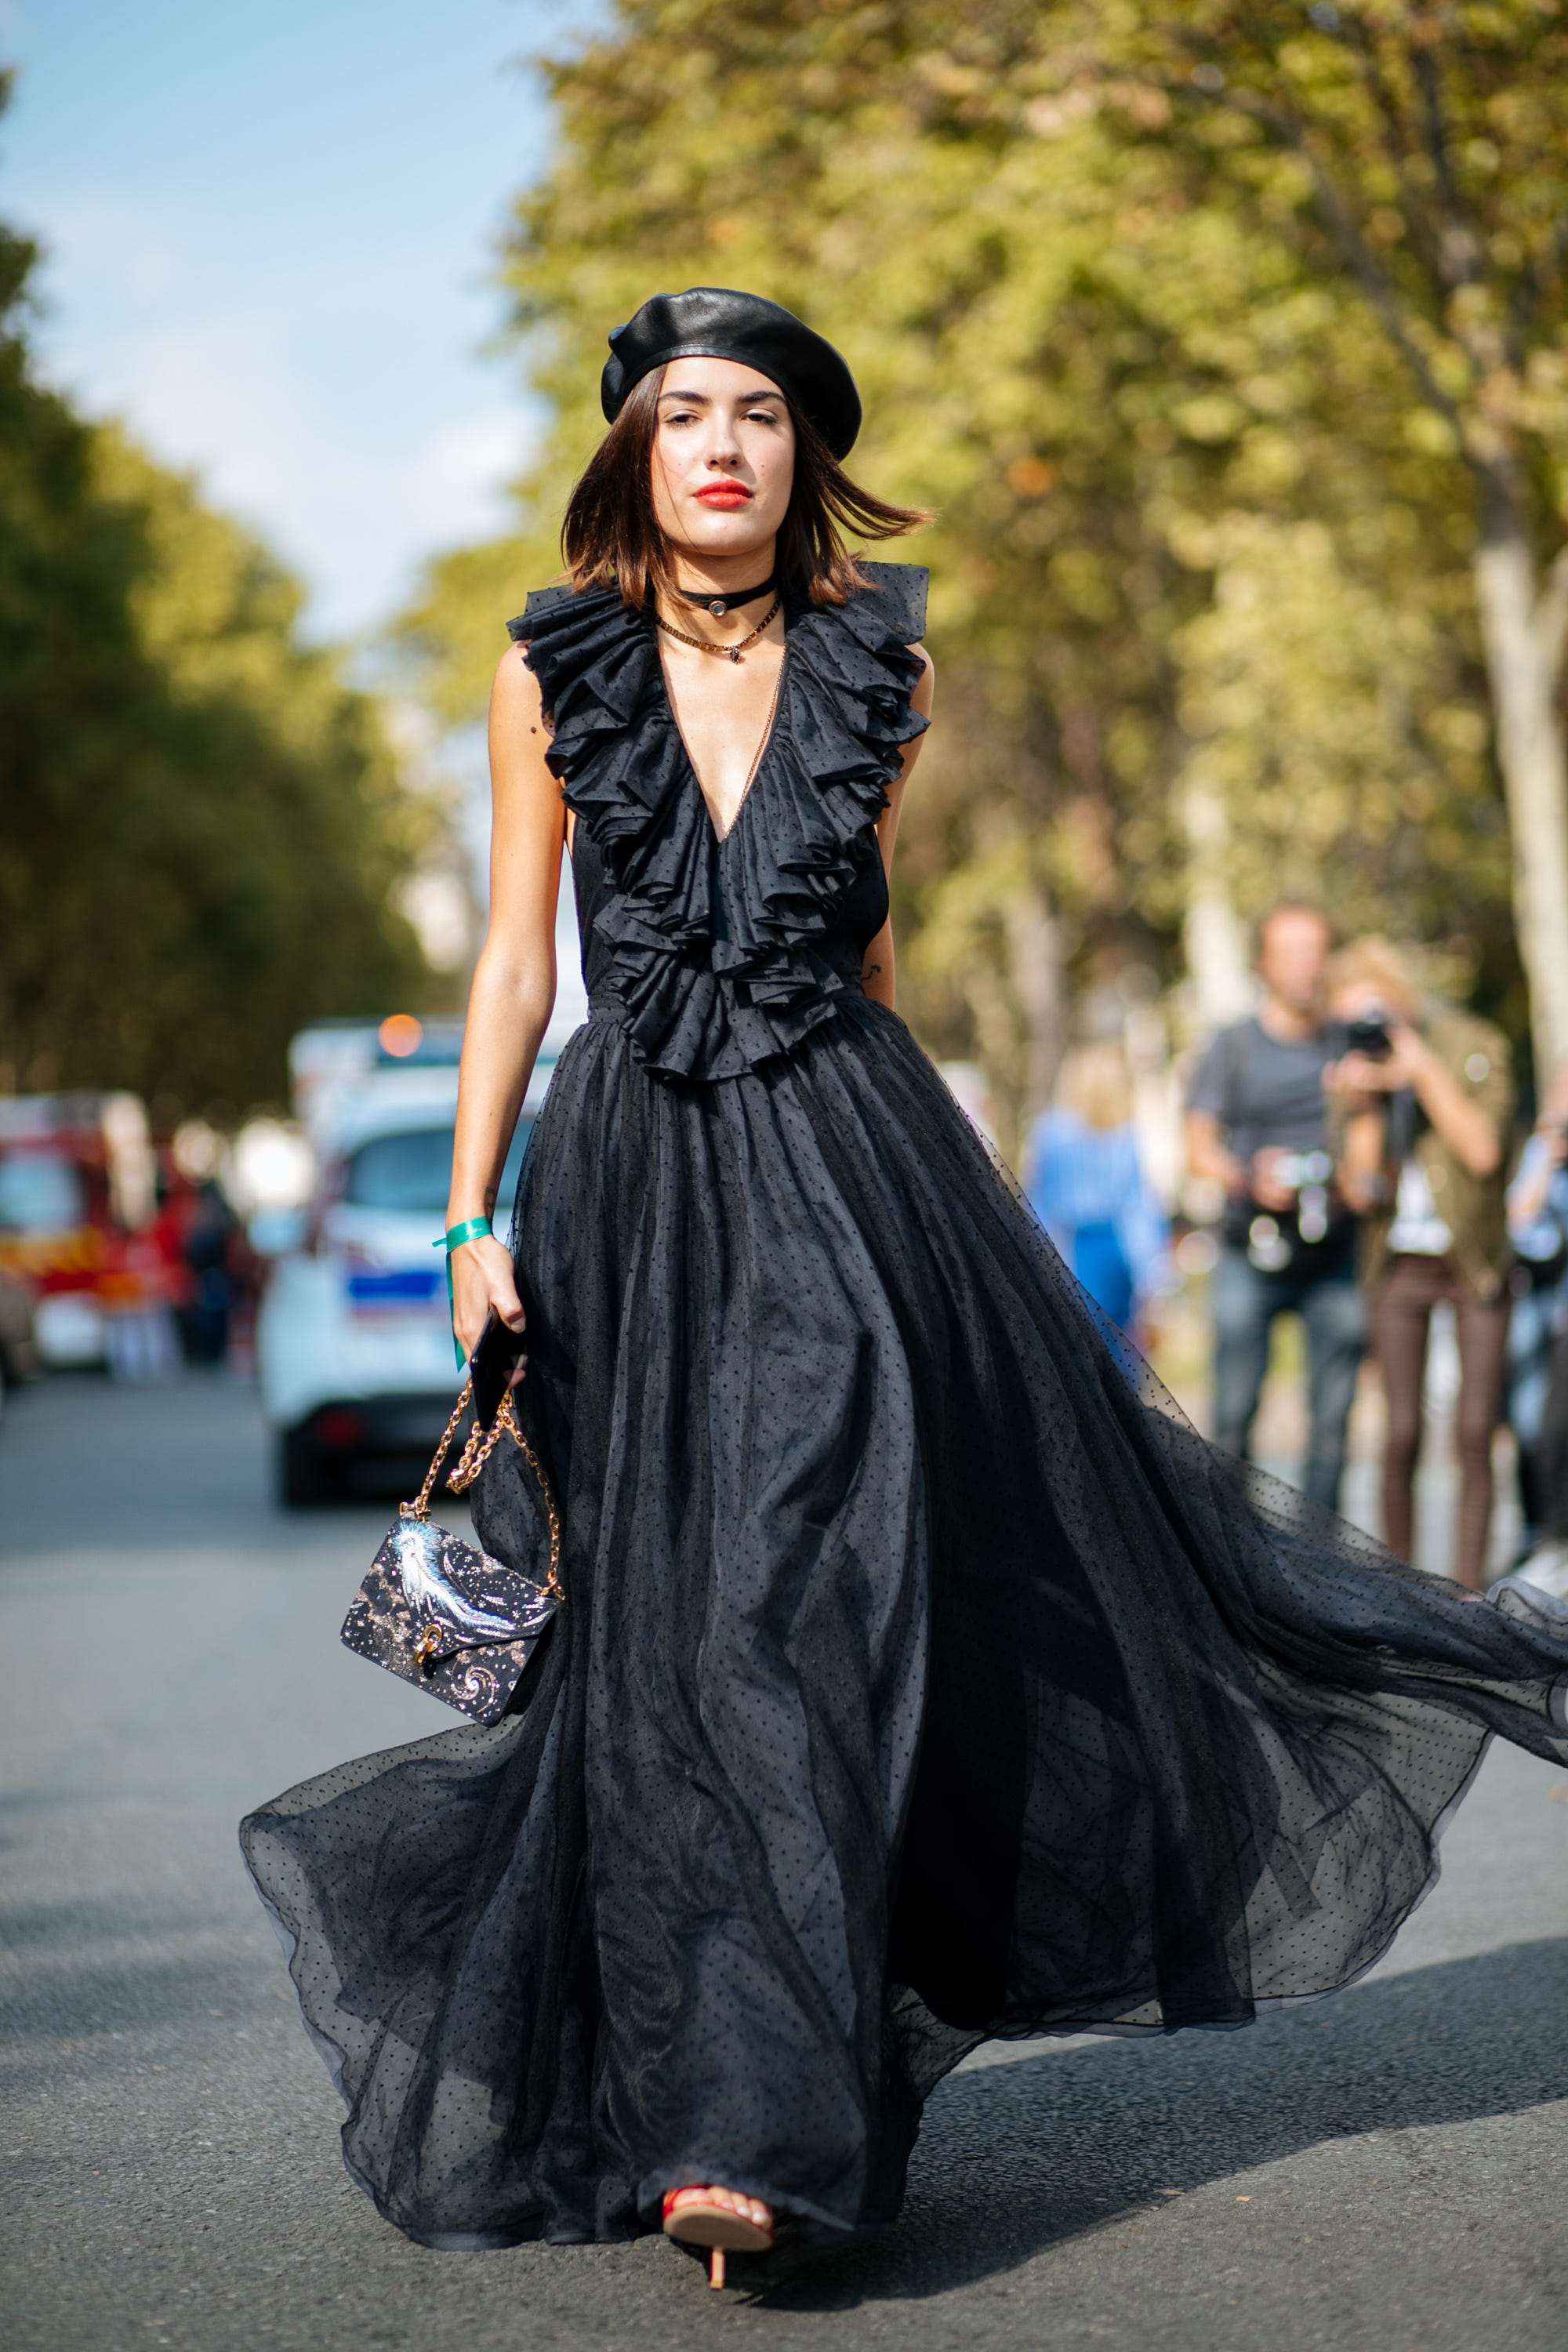 Paris Street Style: See the Bag Everyone is Carrying recommendations